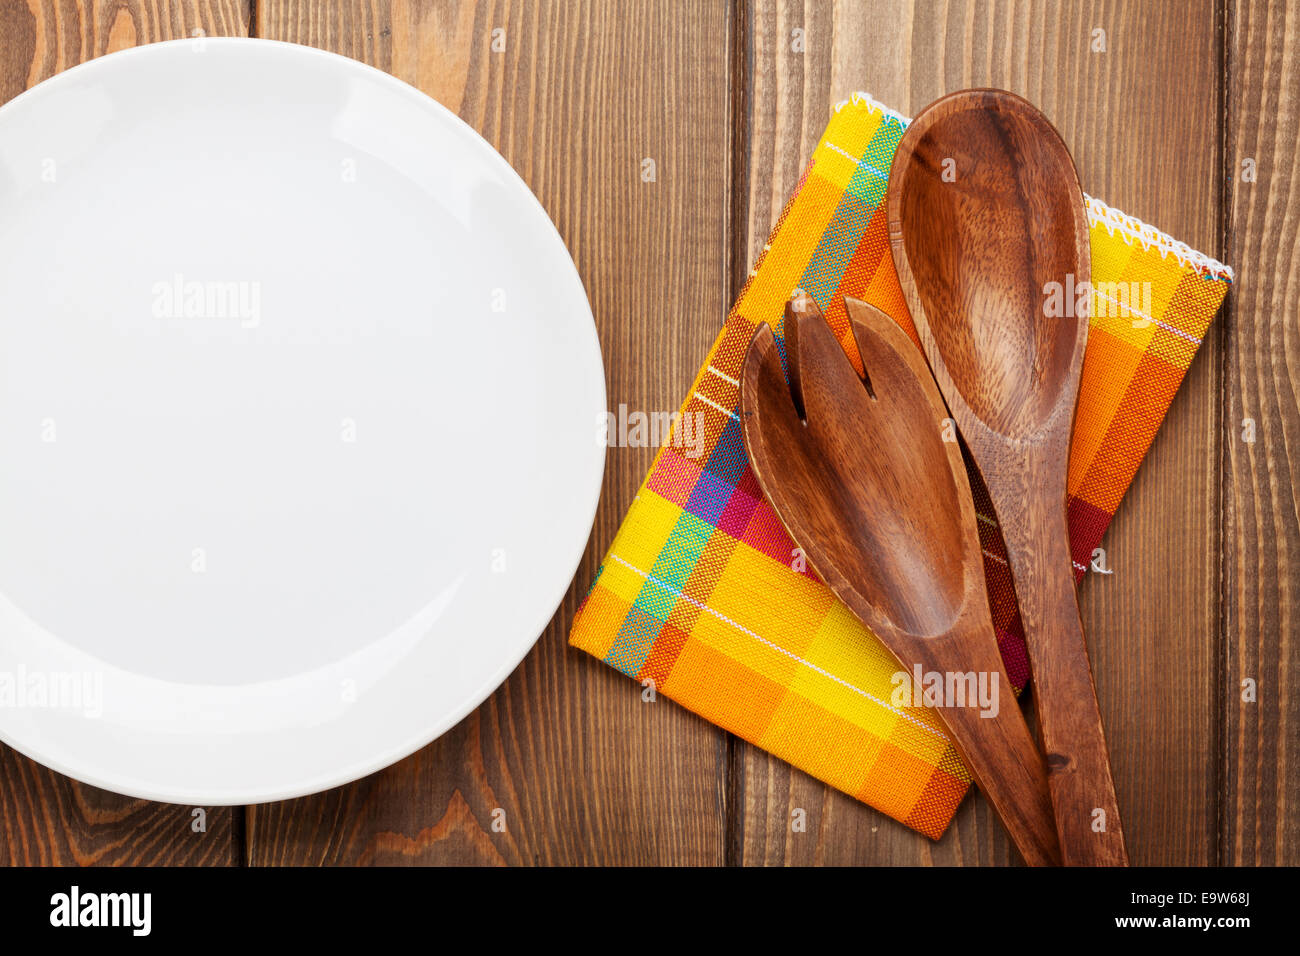 Kitchen Utensils Background rustic style kitchen wooden plate stock photos & rustic style